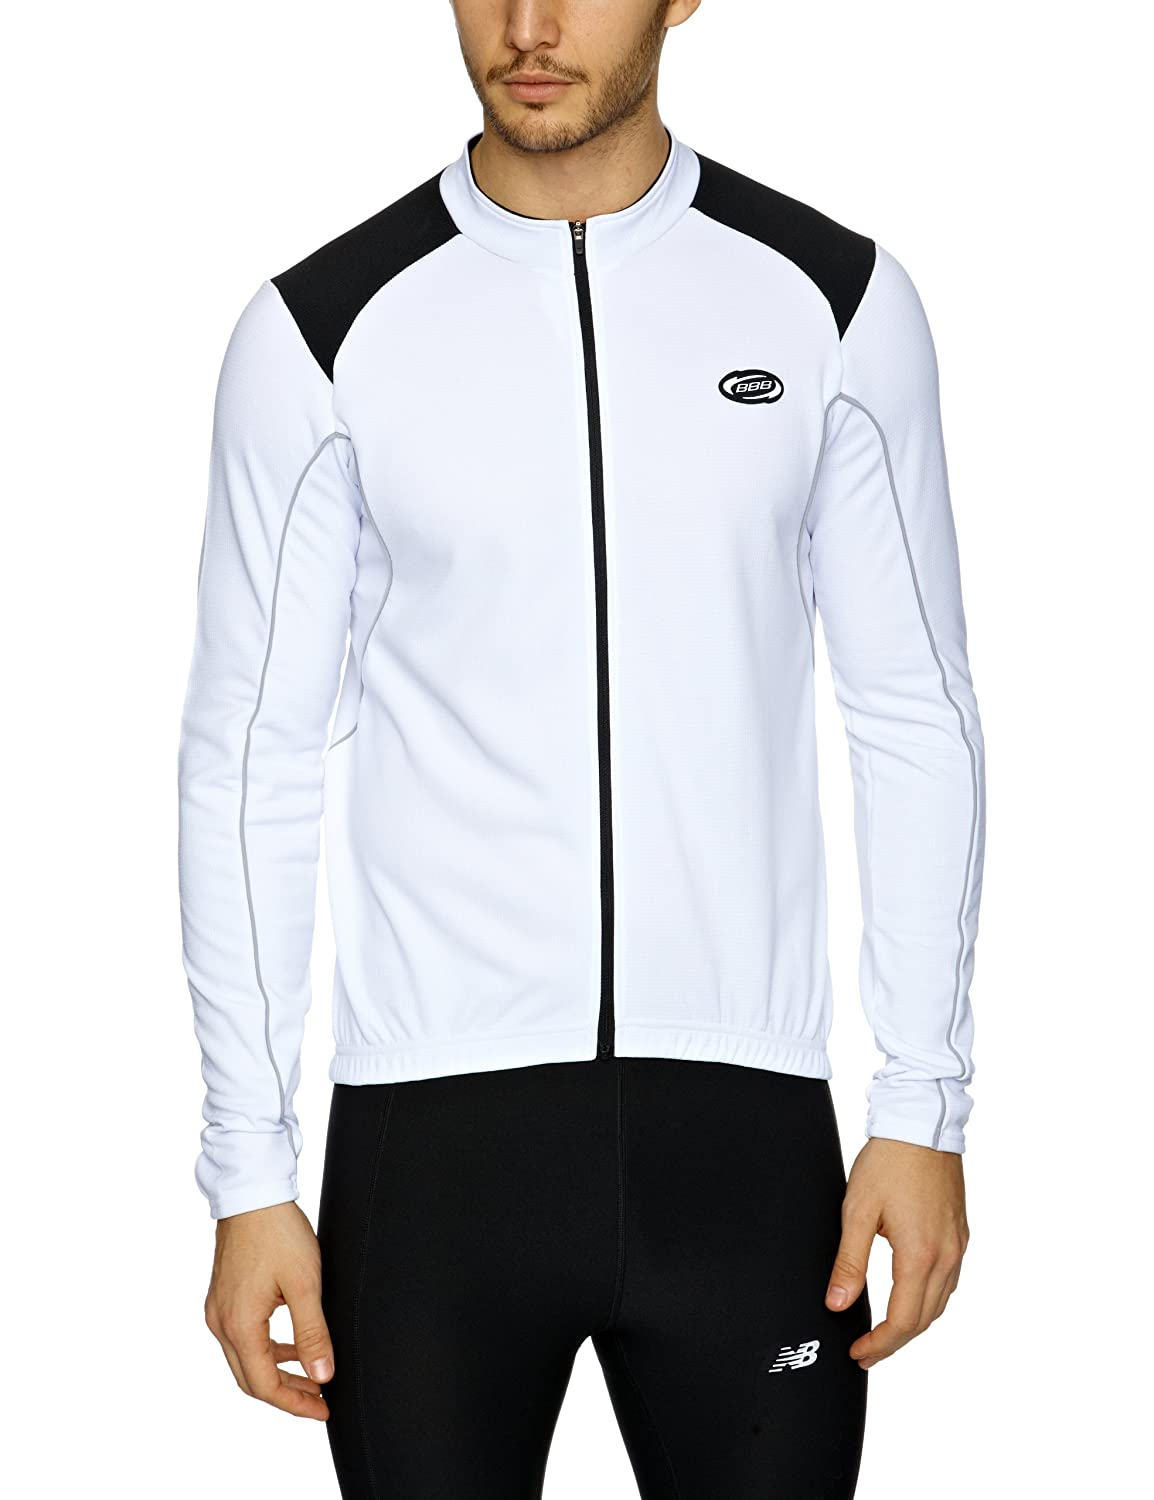 BBB PoloShield Men's Long Sleeve Jersey